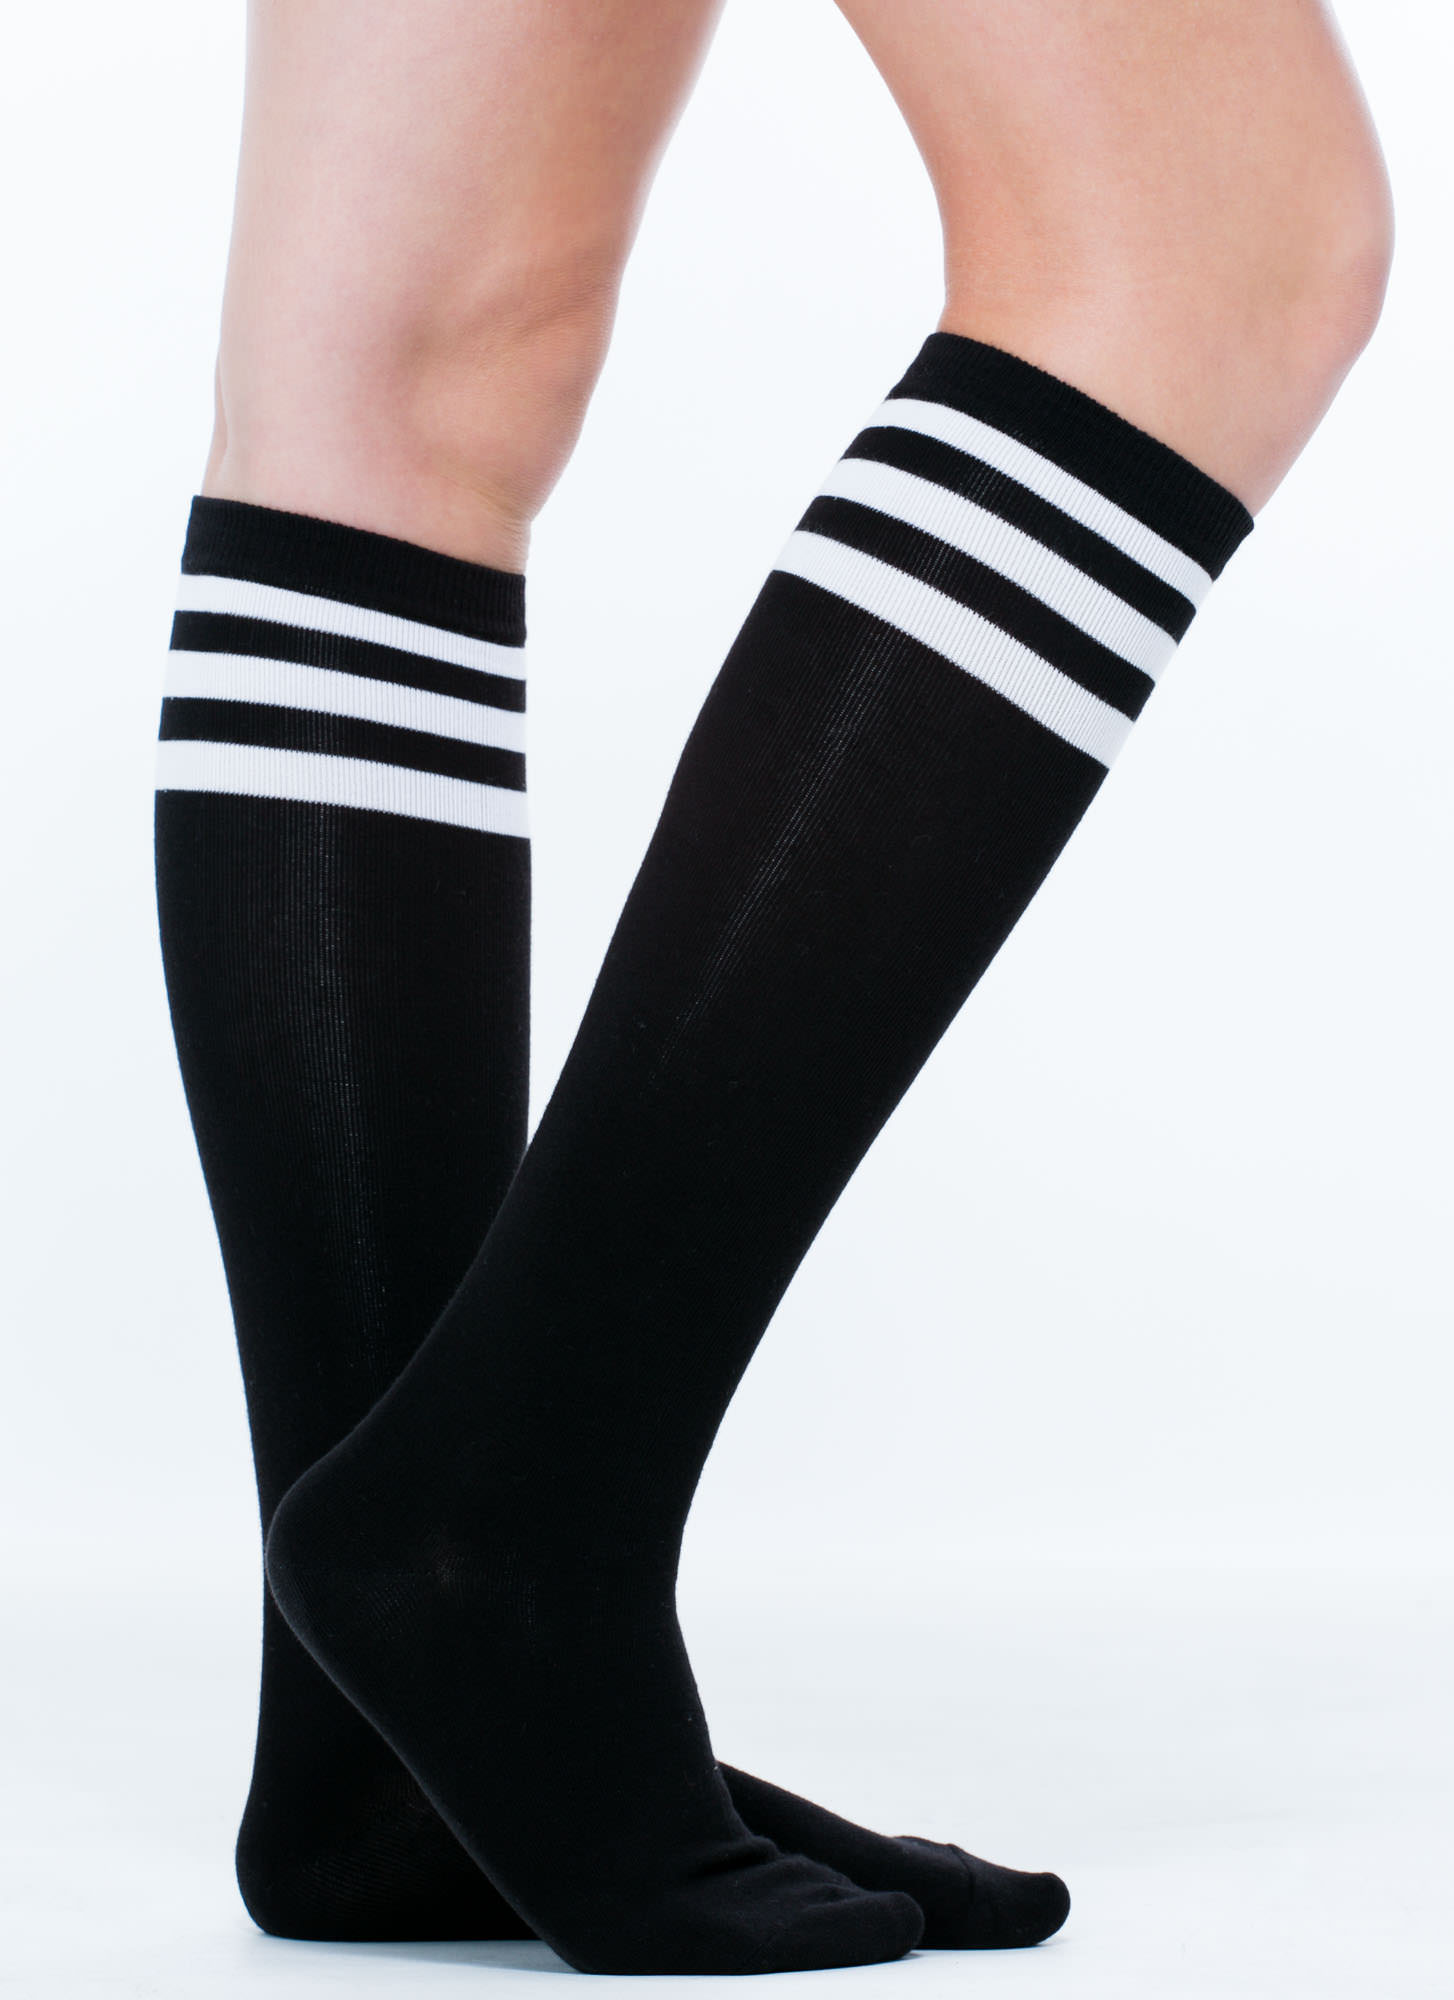 b9a3592f7 Earn Your Stripes Knee-High Socks BLACK WHITE - GoJane.com